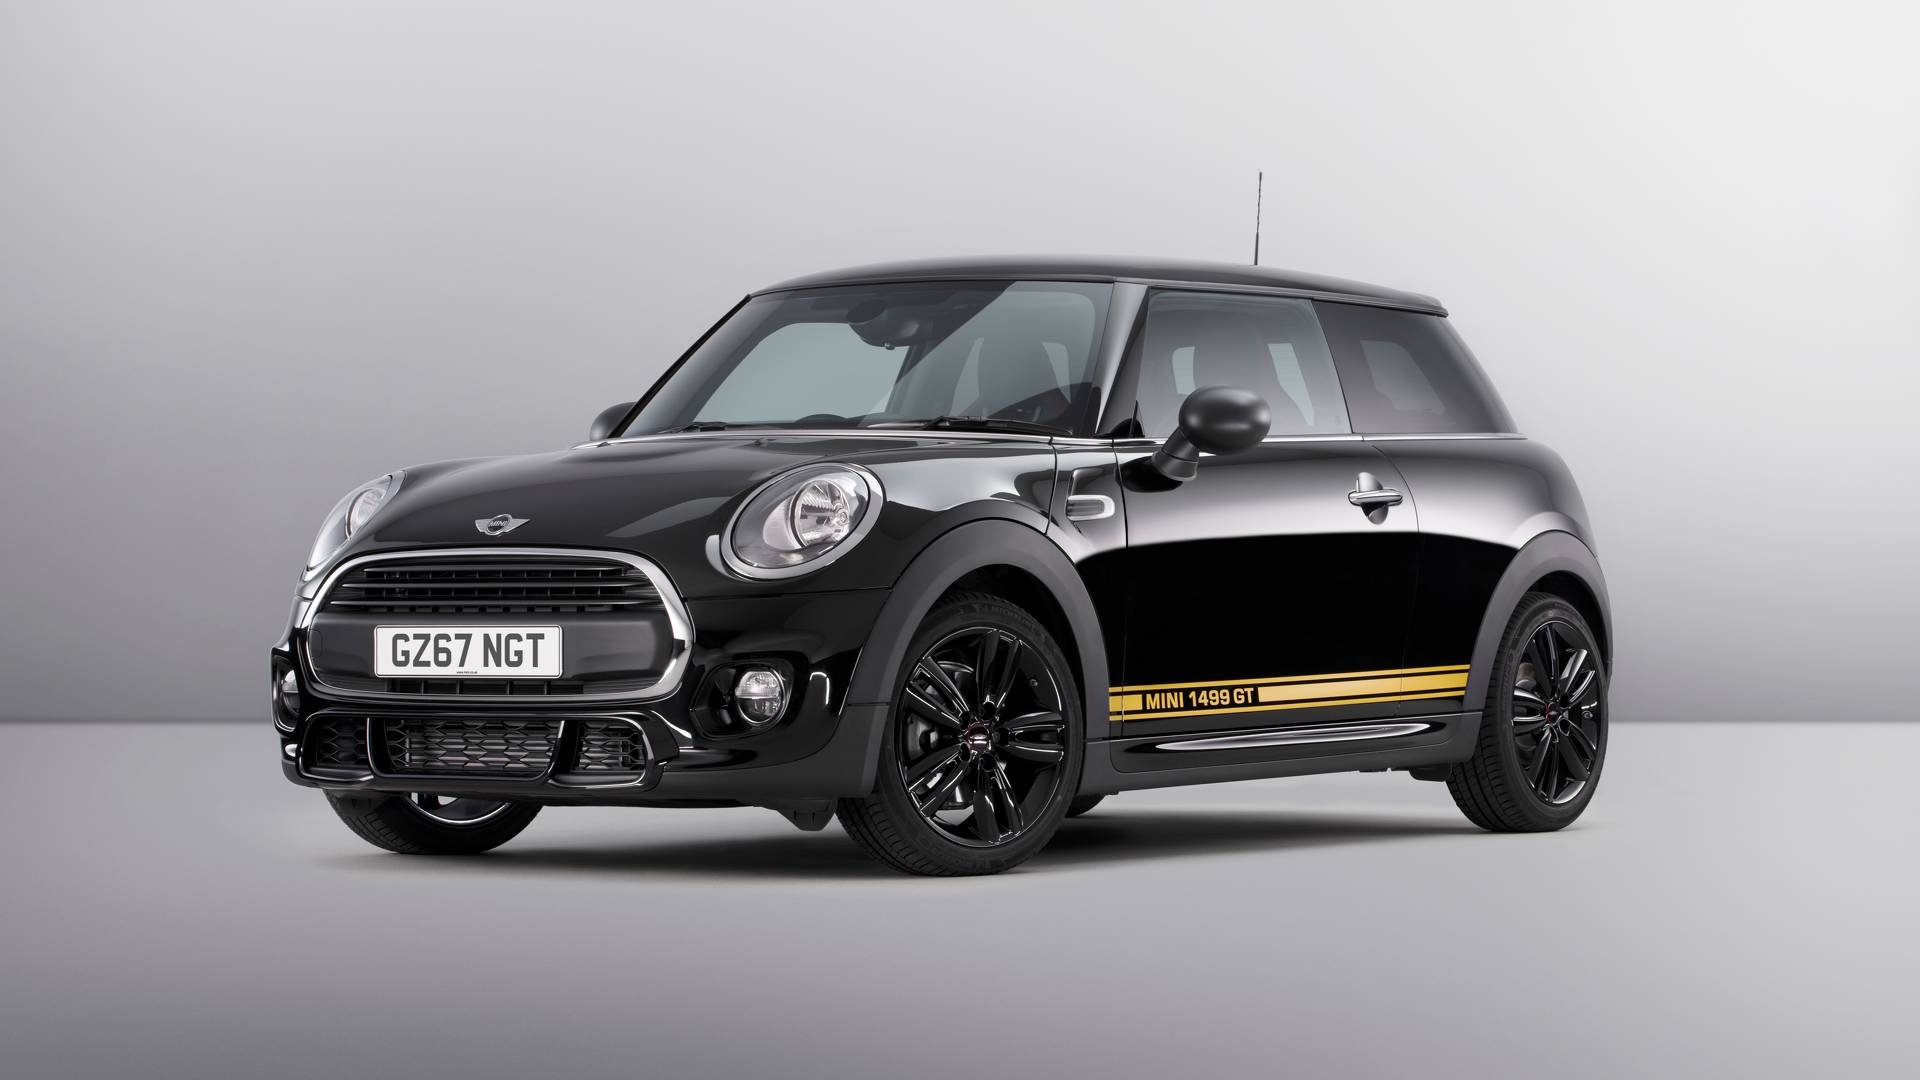 Mini 1499 Gt Edition Has Fast Looks Low Price